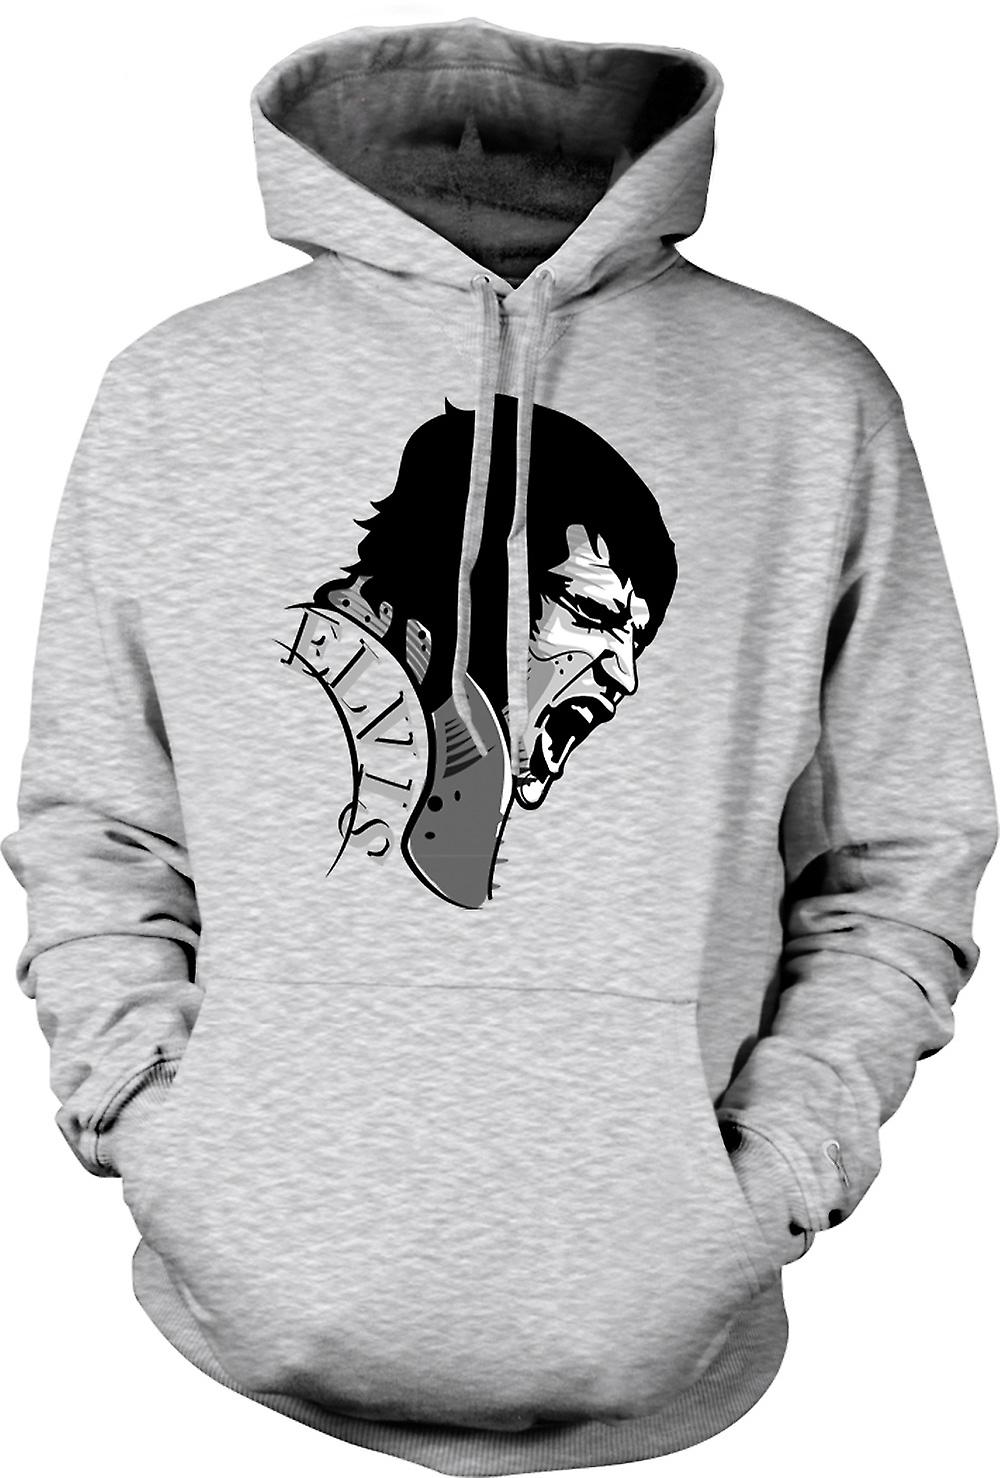 Mens Hoodie - Elvis Presley Singing - Cool